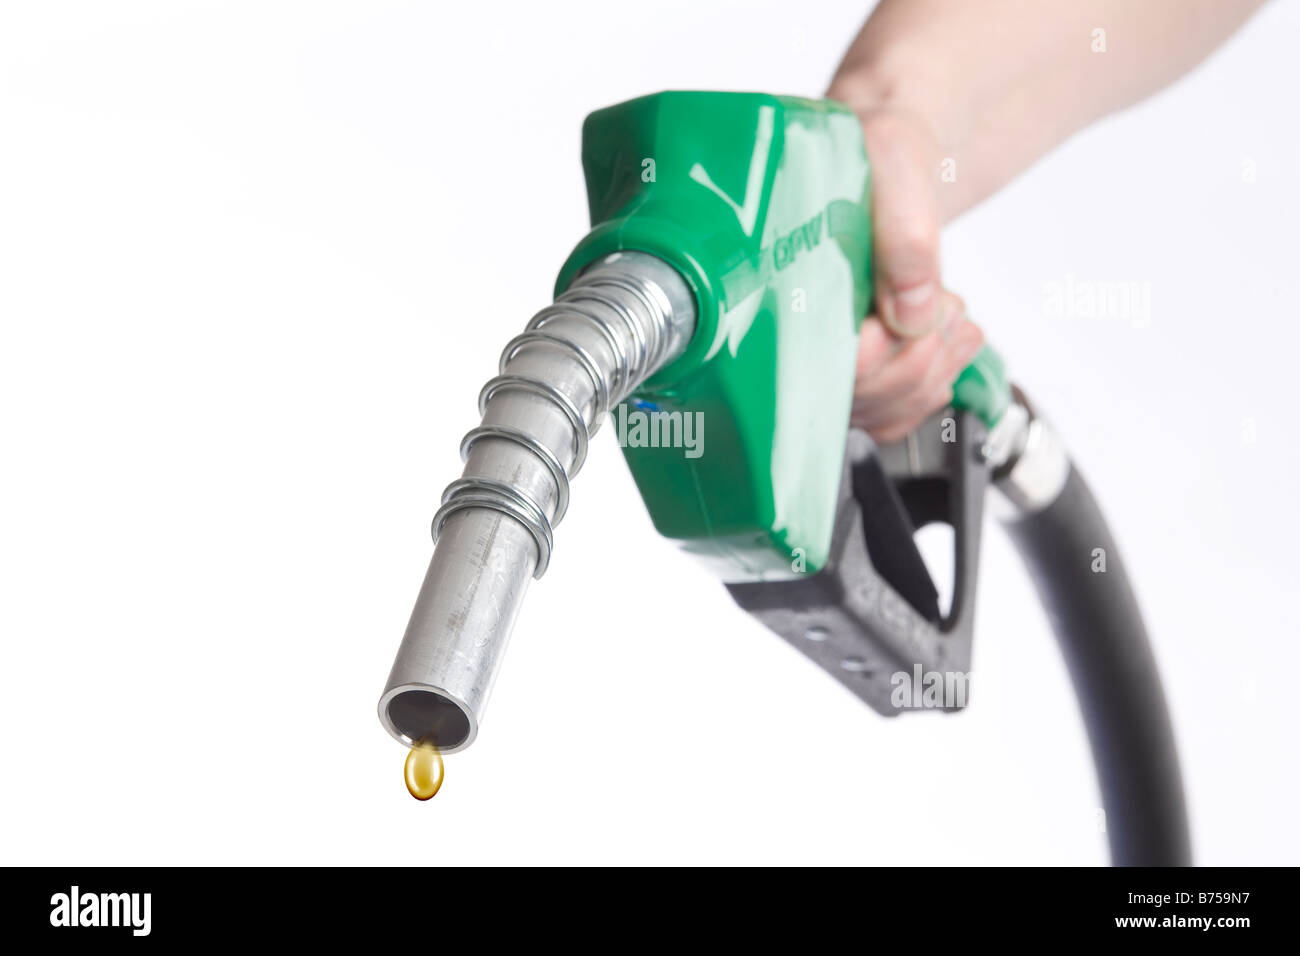 Hand holding nozzle with drop of gasoline coming out, Winnipeg, Manitoba - Stock Image